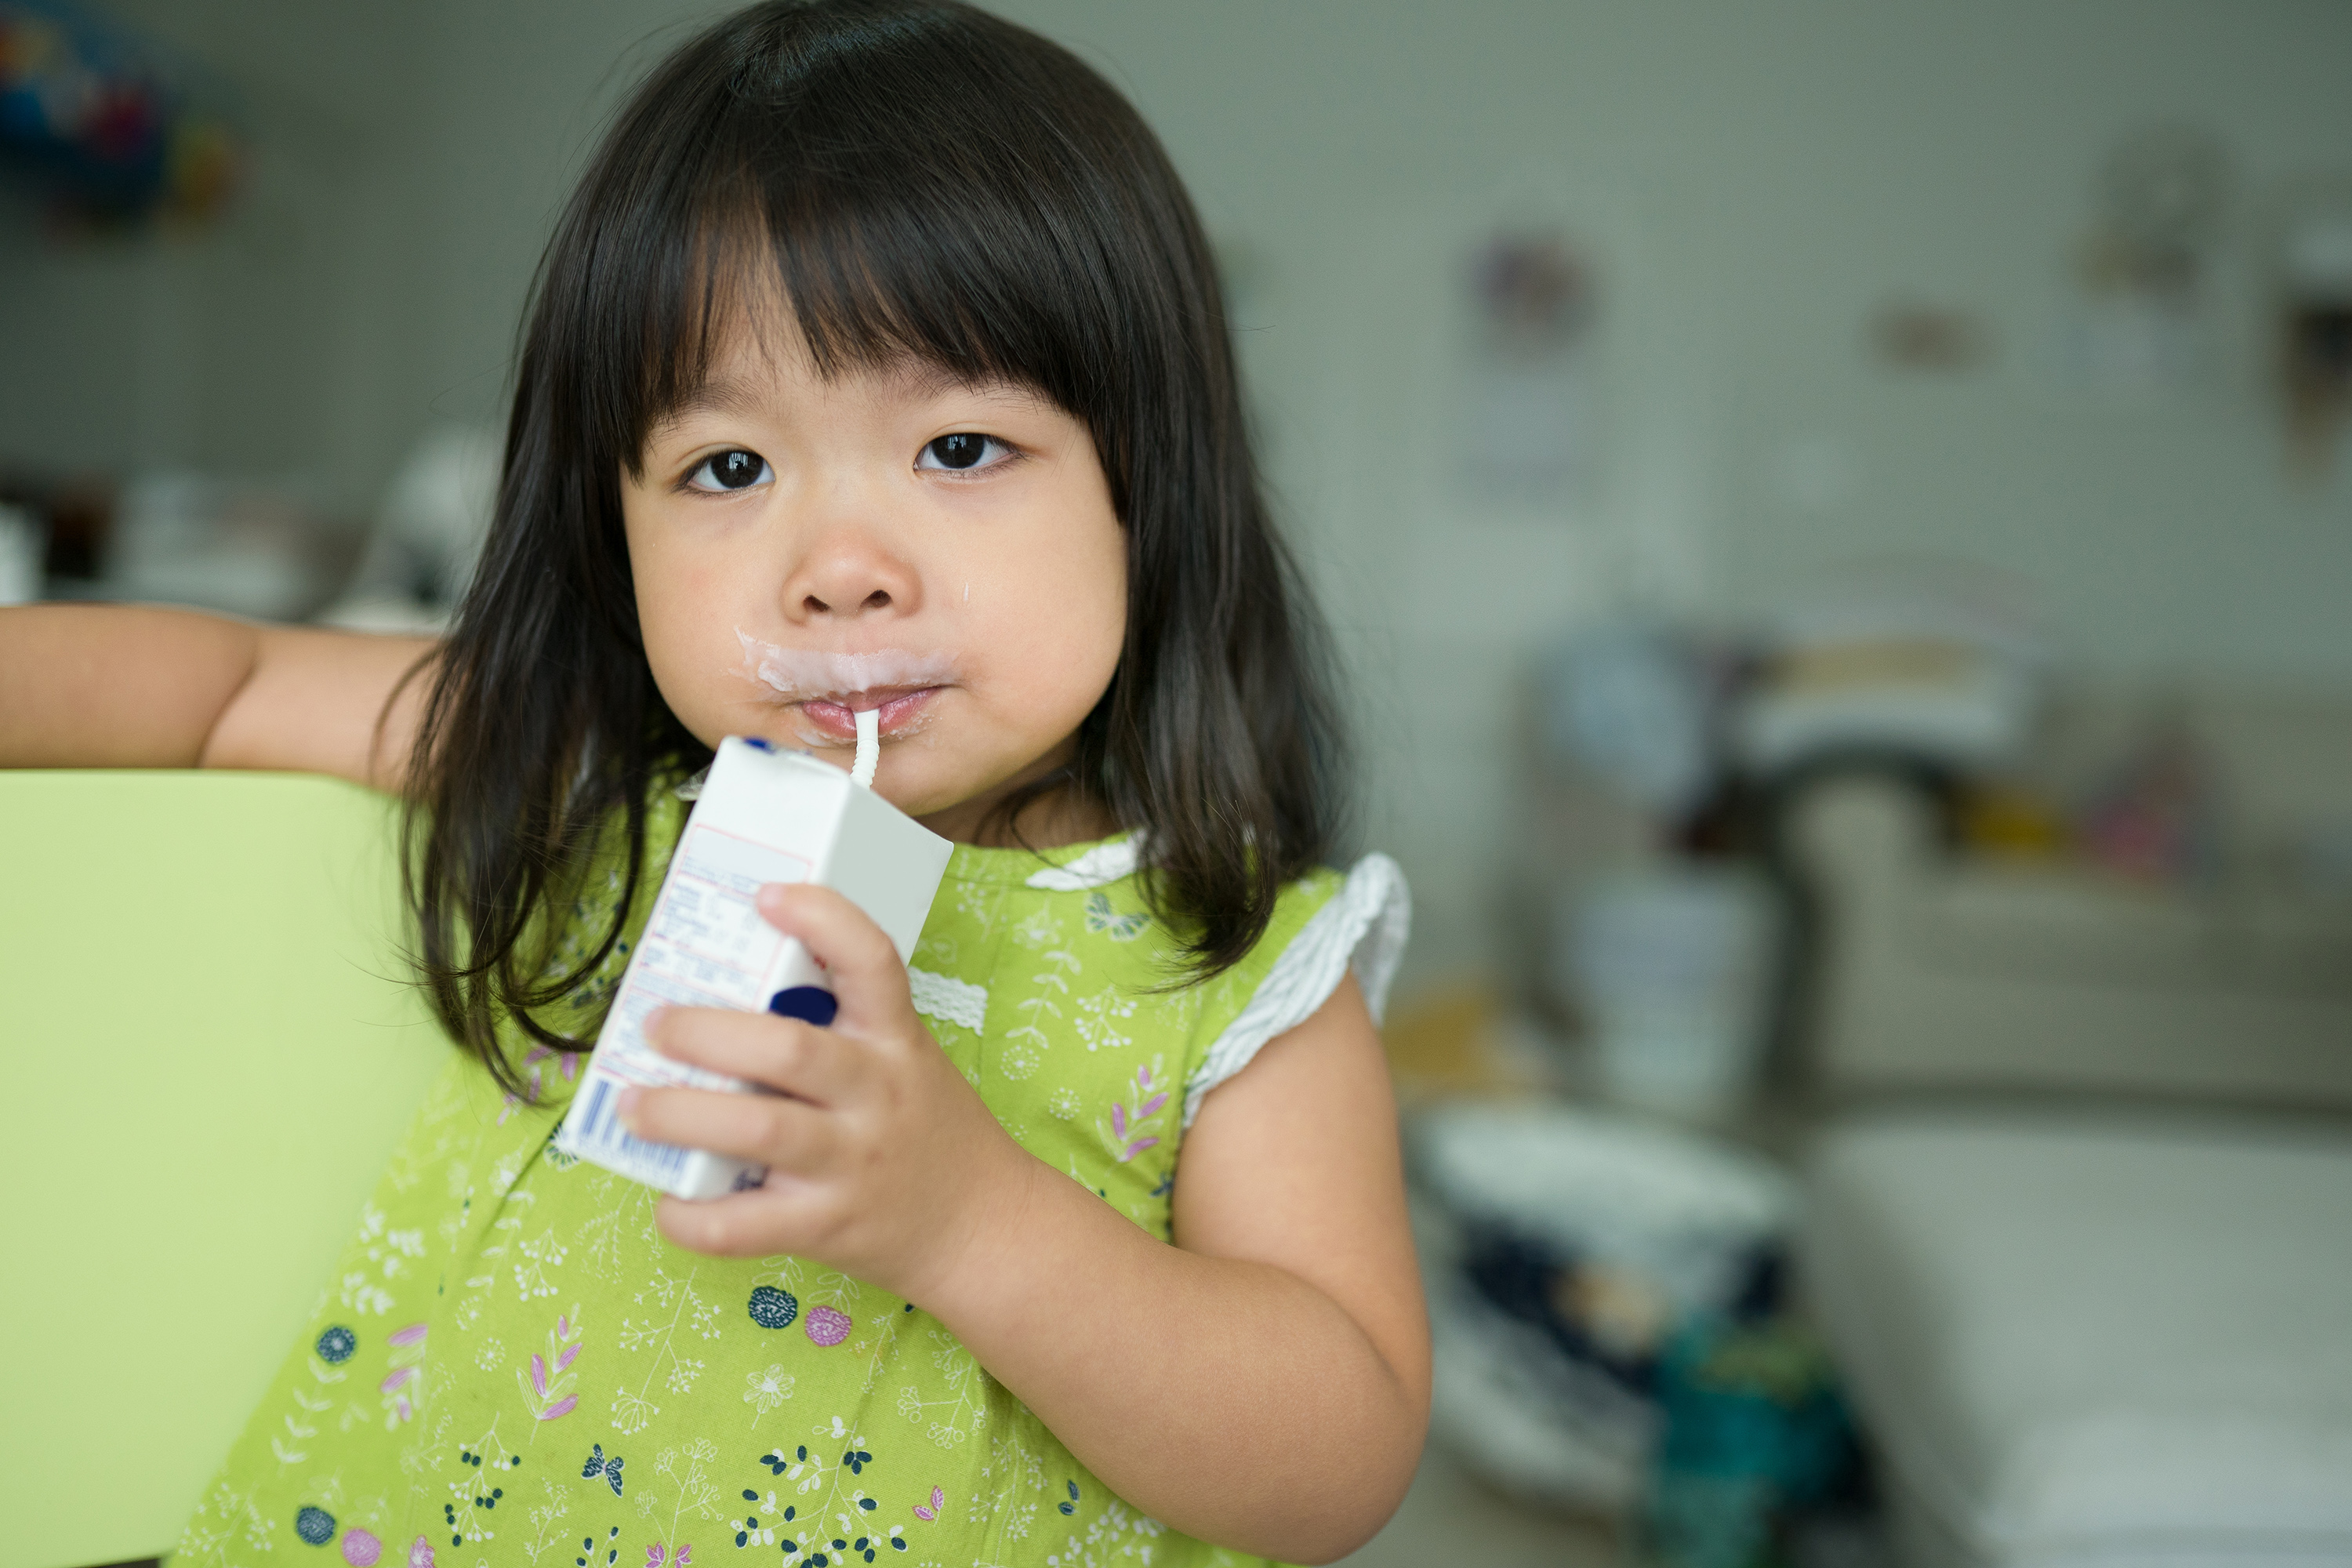 A child drinking a small carton of milk. (Shutterstock)